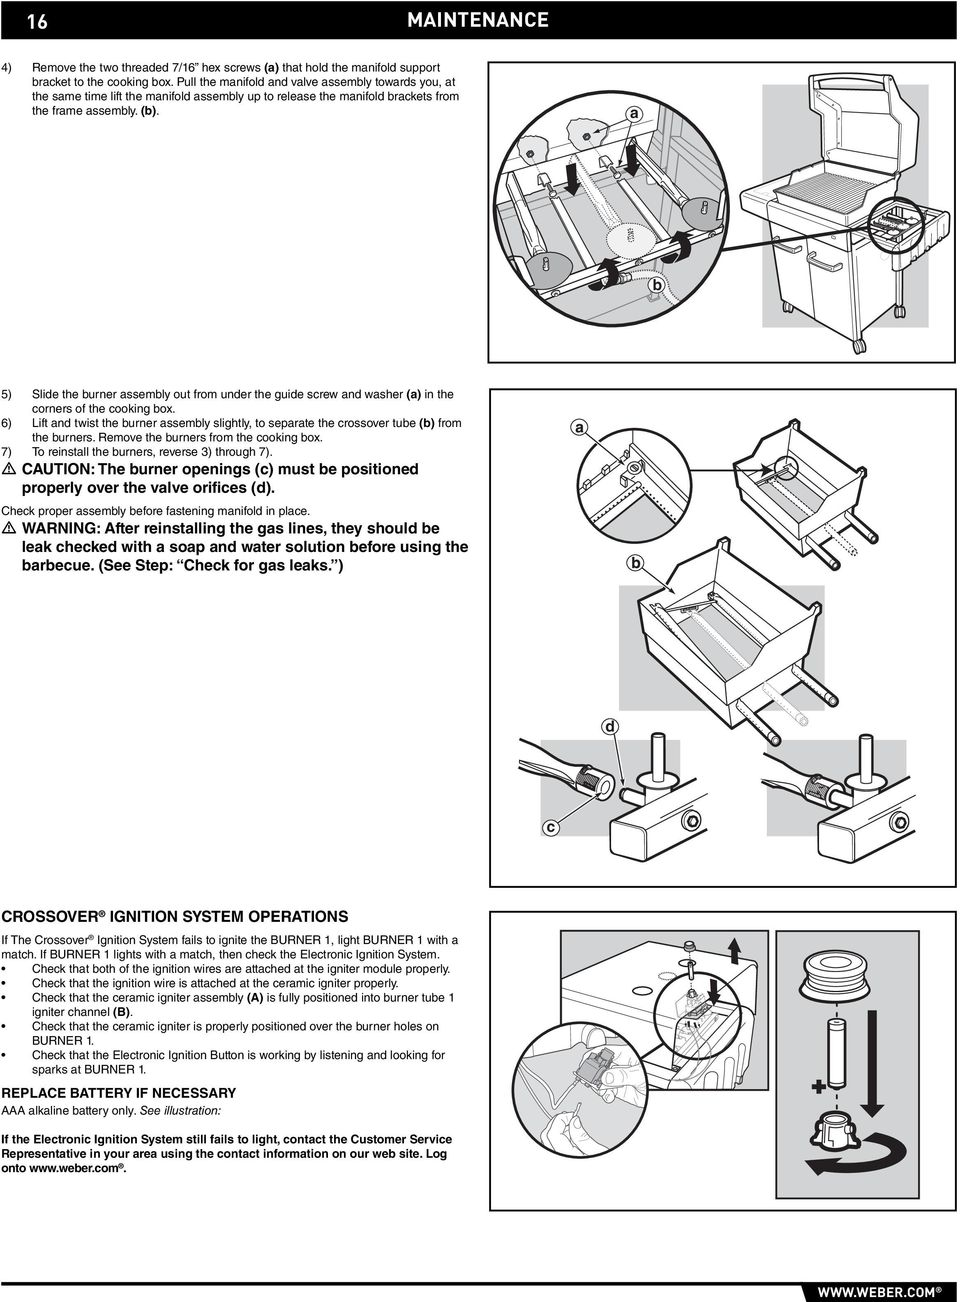 a b 5) Slide the burner assembly out from under the guide screw and washer (a) in the corners of the cooking box.